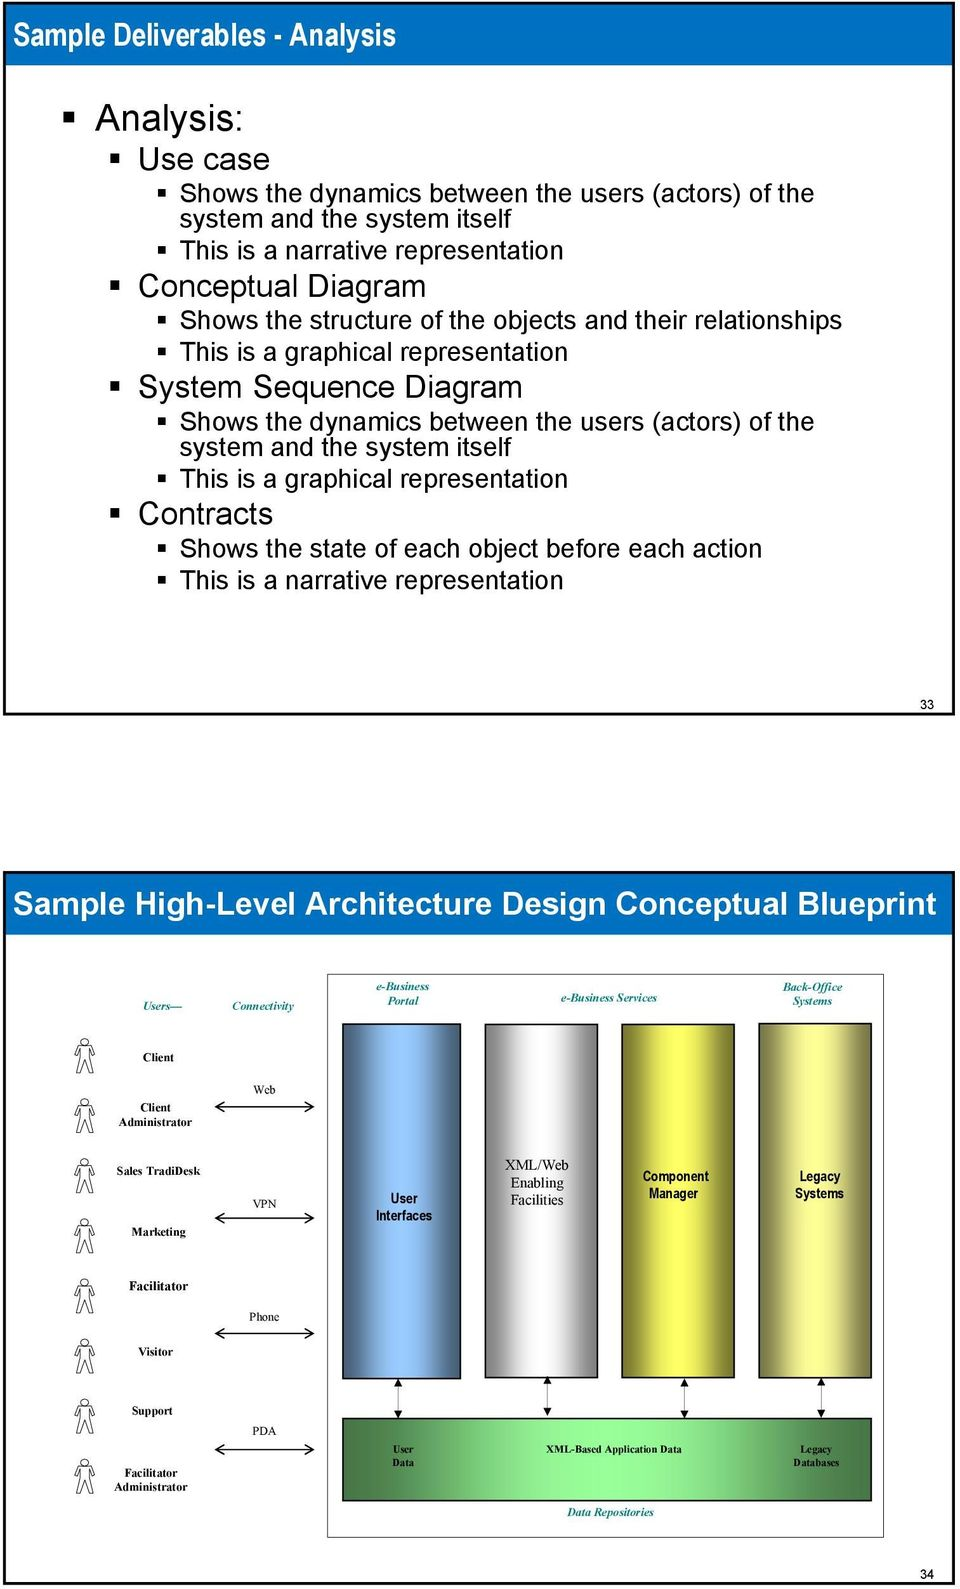 graphical representation Contracts Shows the state of each object before each action This is a narrative representation 33 Sample High-Level Architecture Design Conceptual Blueprint Users